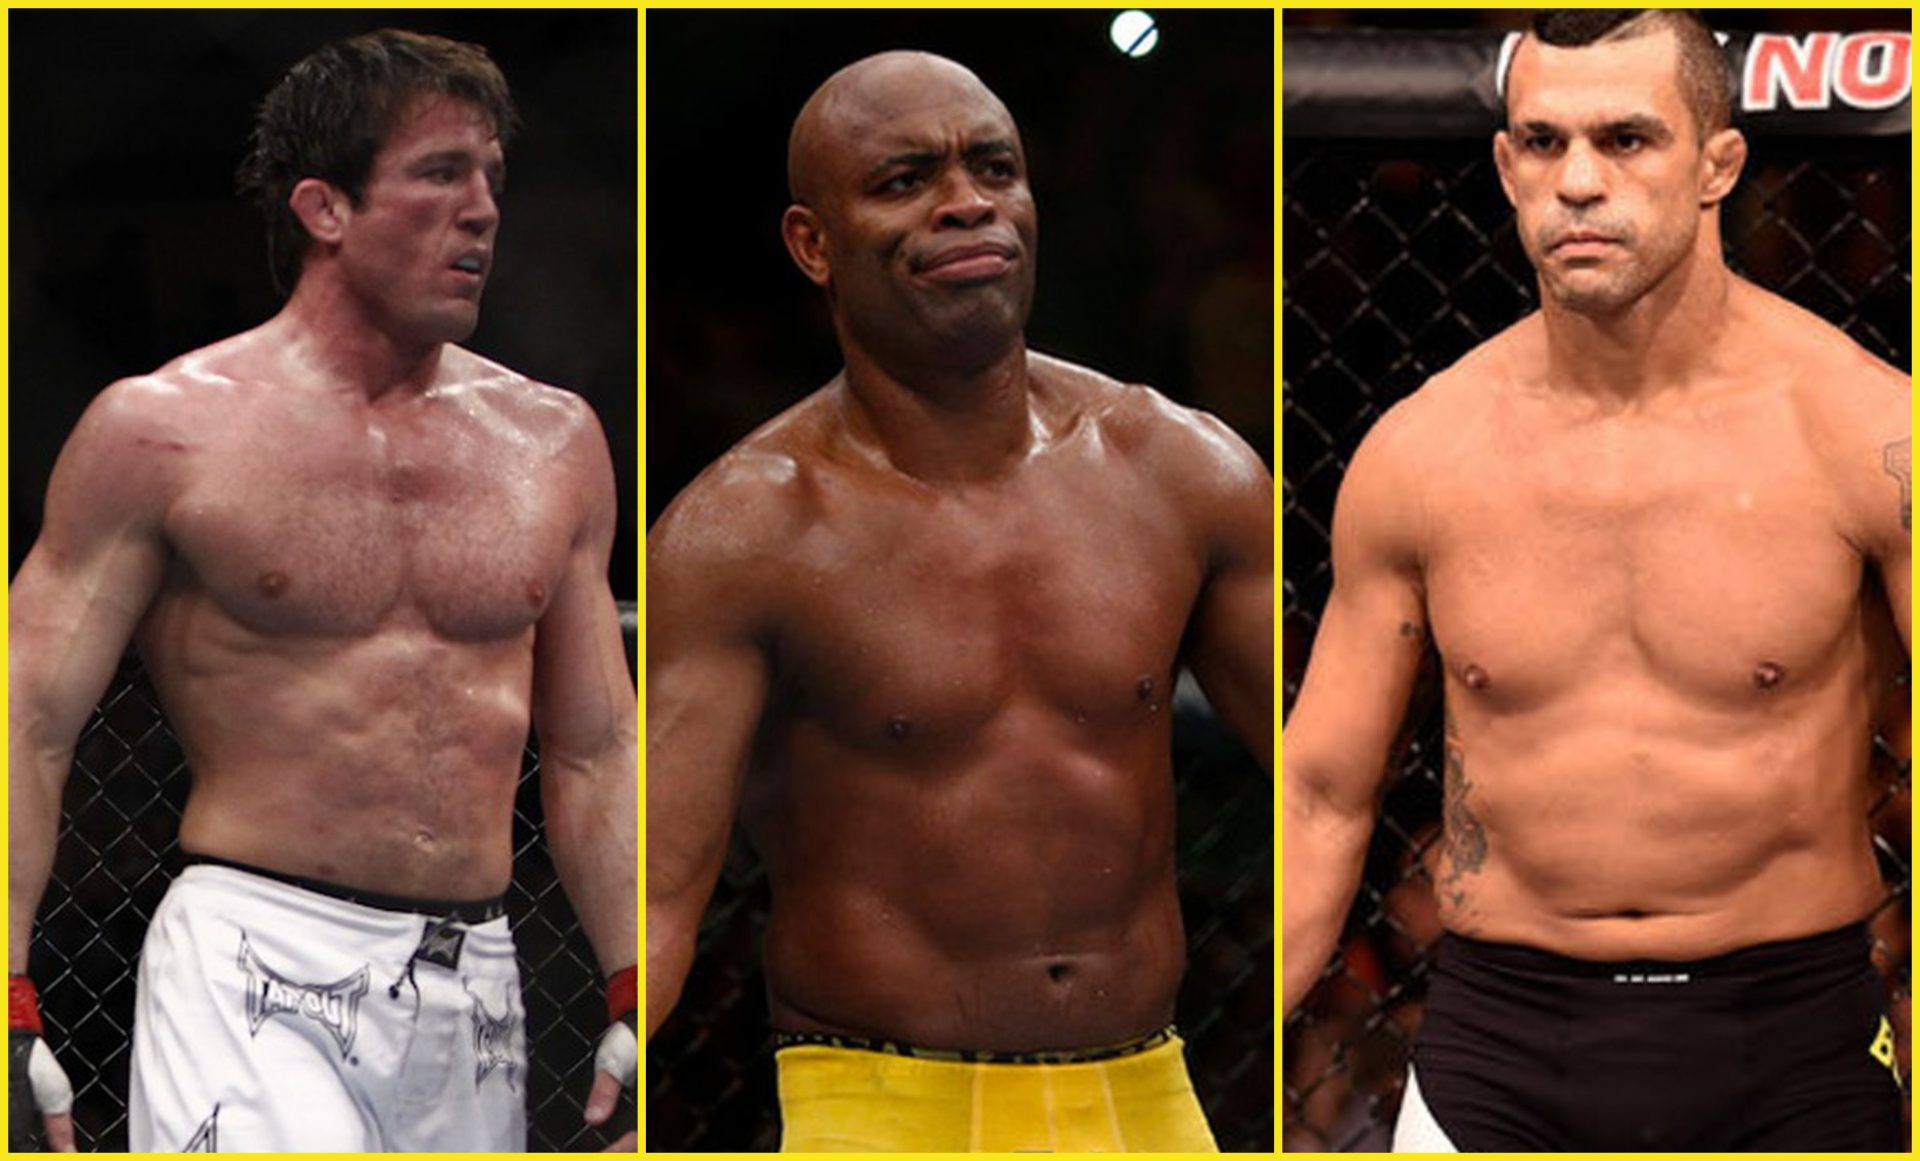 Vitor Belfort calls for a fight against Anderson Silva and Chael Sonnen - Vitor Belfort